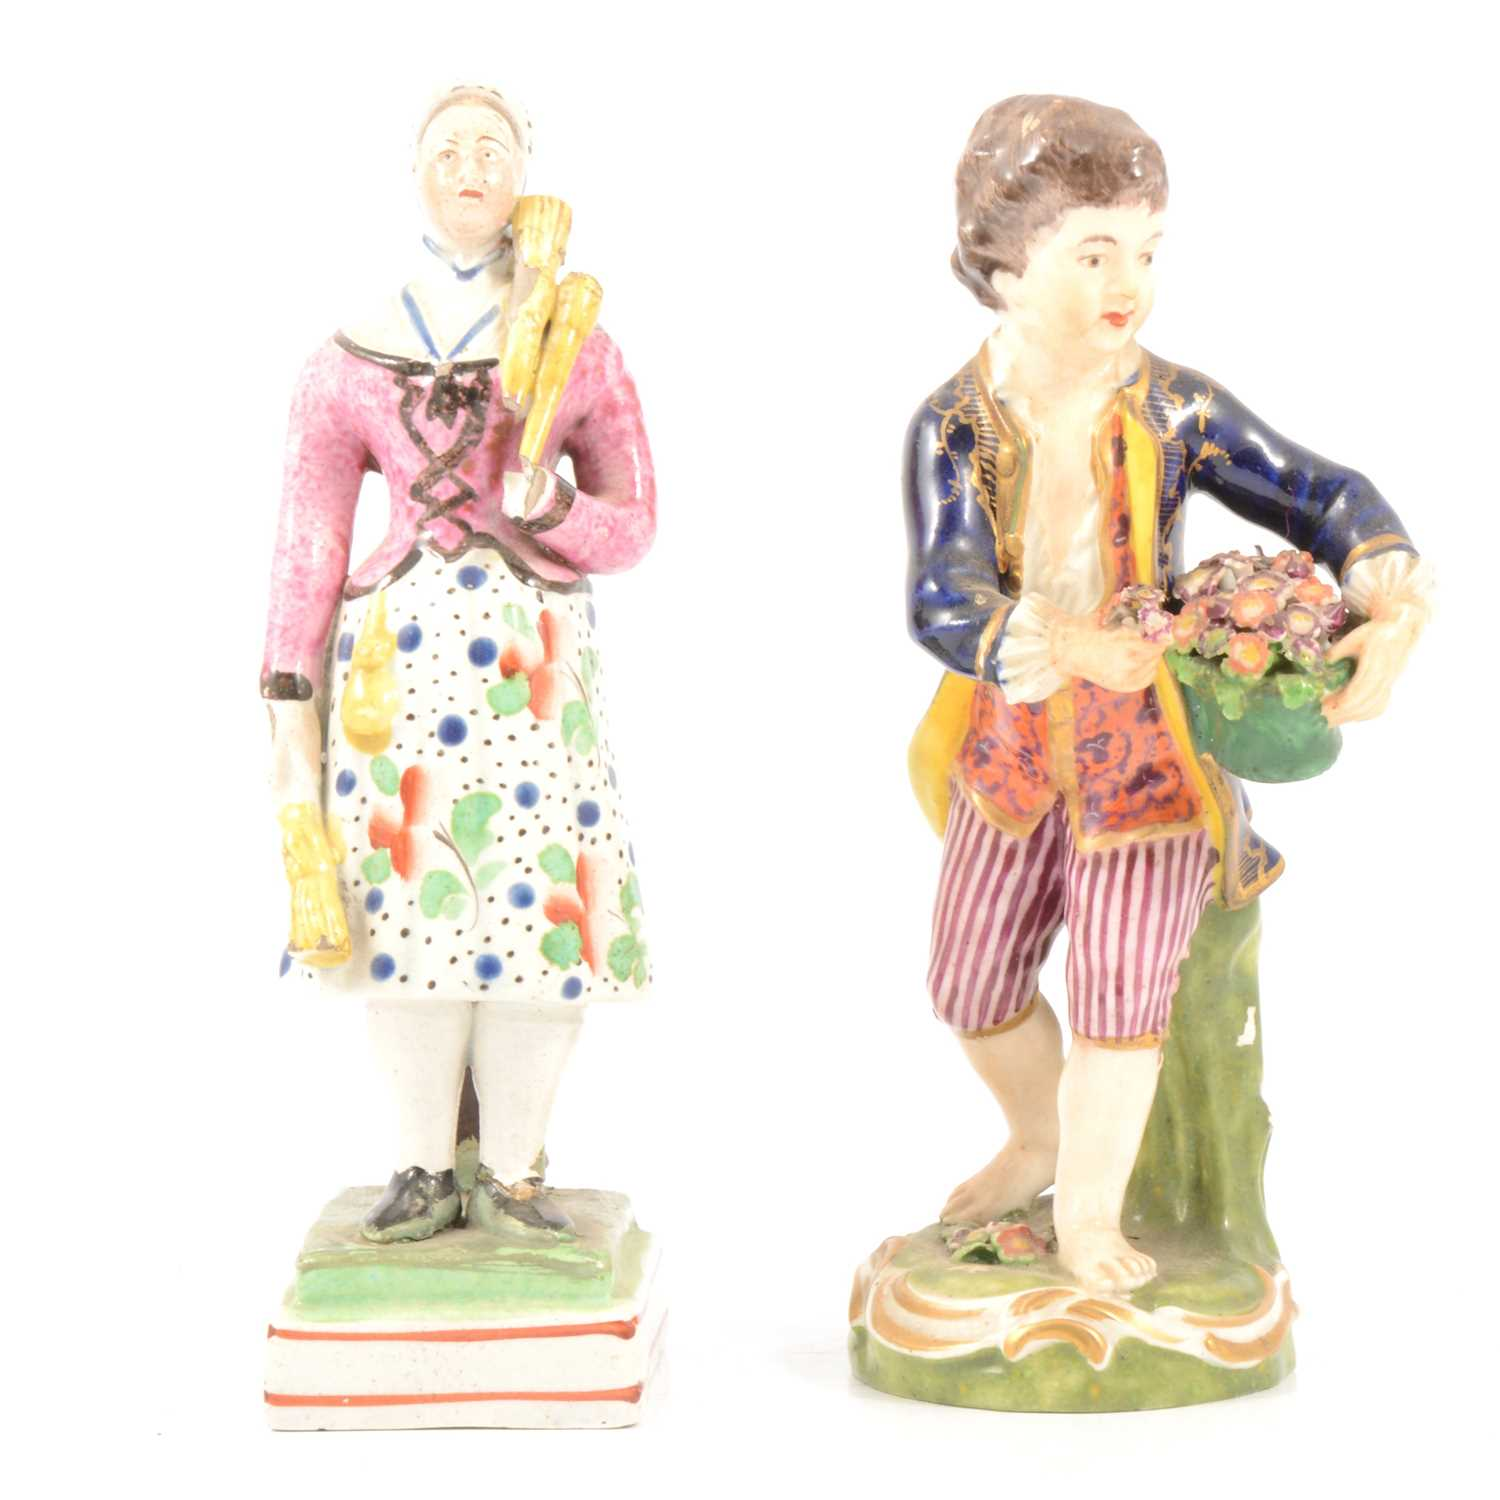 Lot 56 - Derby figure of a boy gardener, and a Pearlware figure